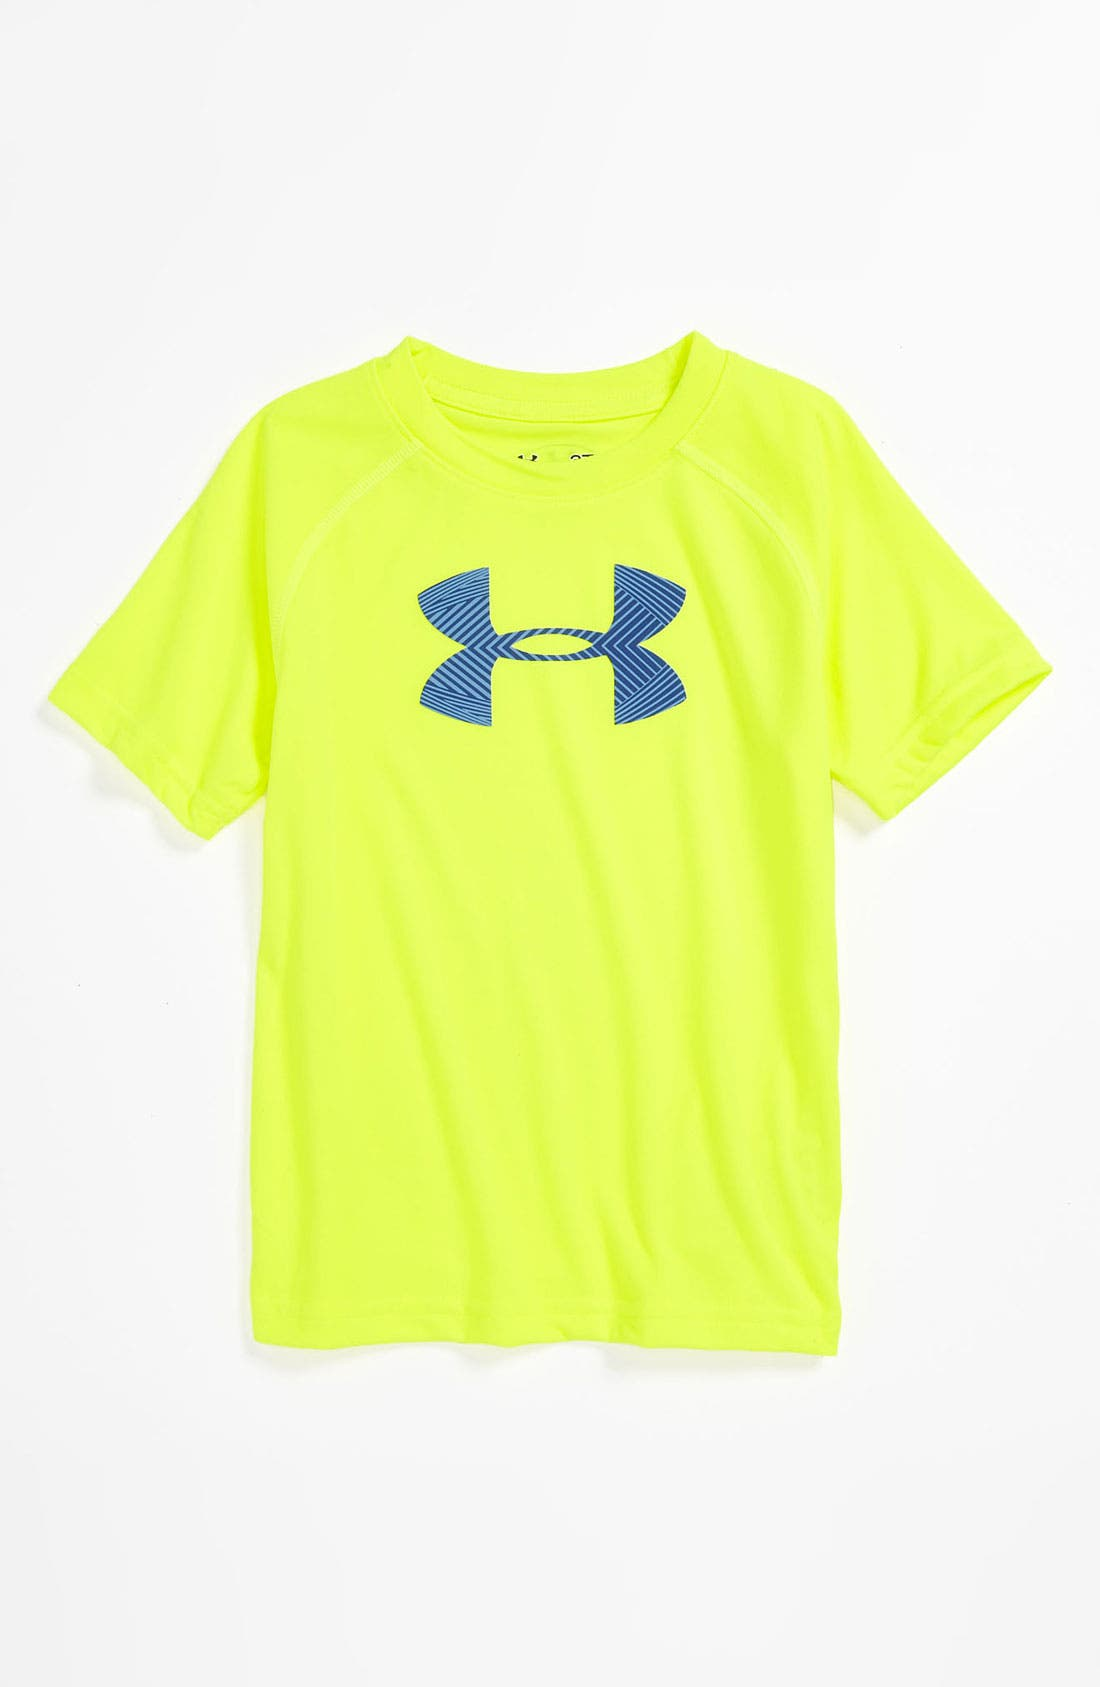 Main Image - Under Armour T-Shirt (Toddler)